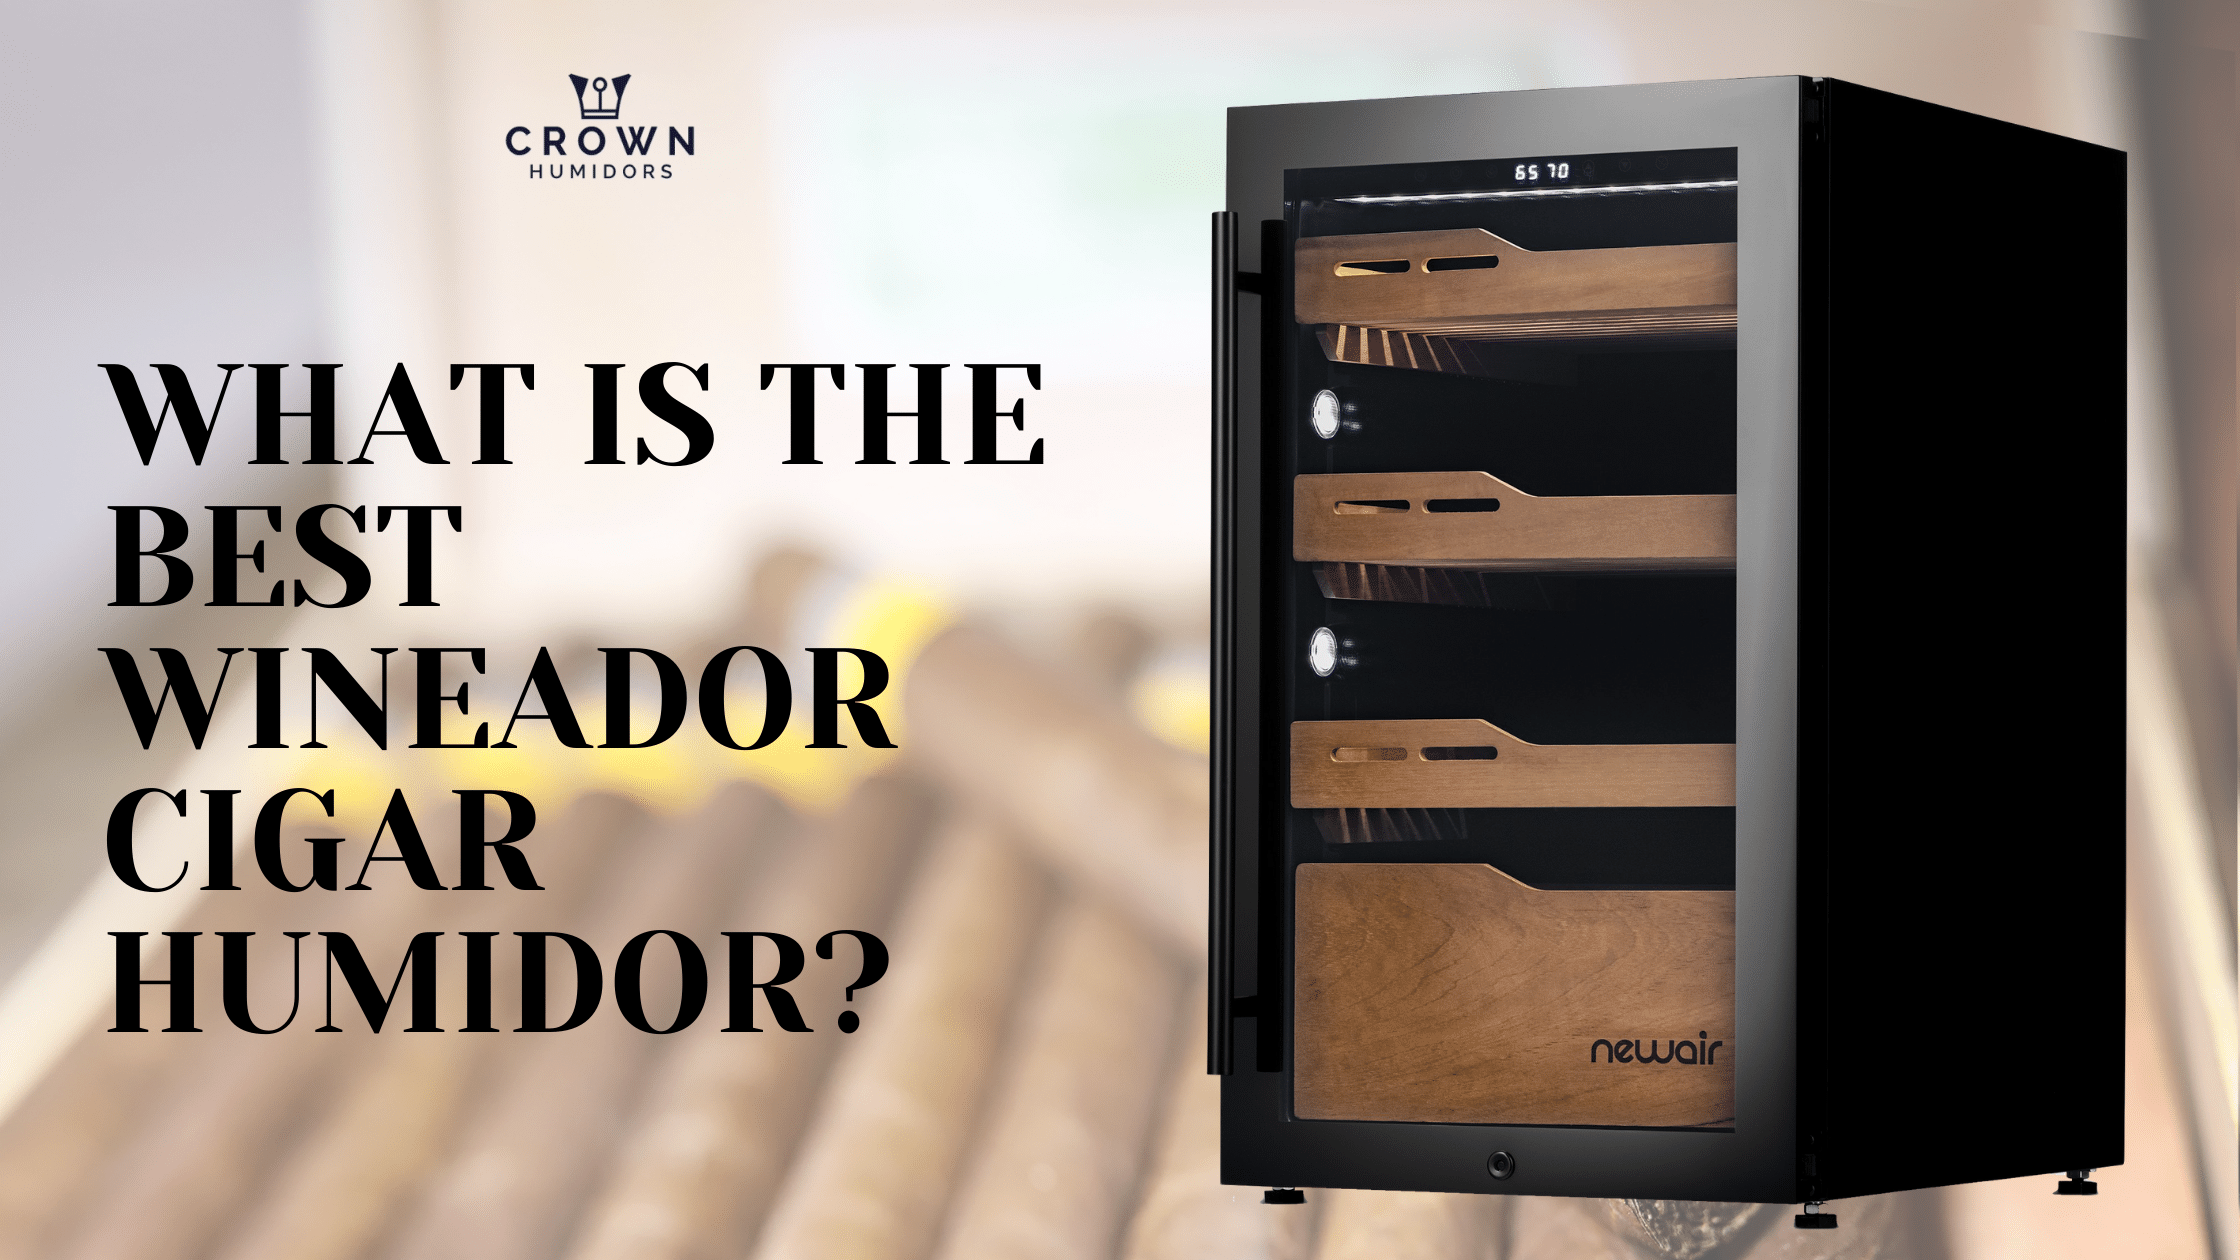 What is the best Wineador Cigar humidor?